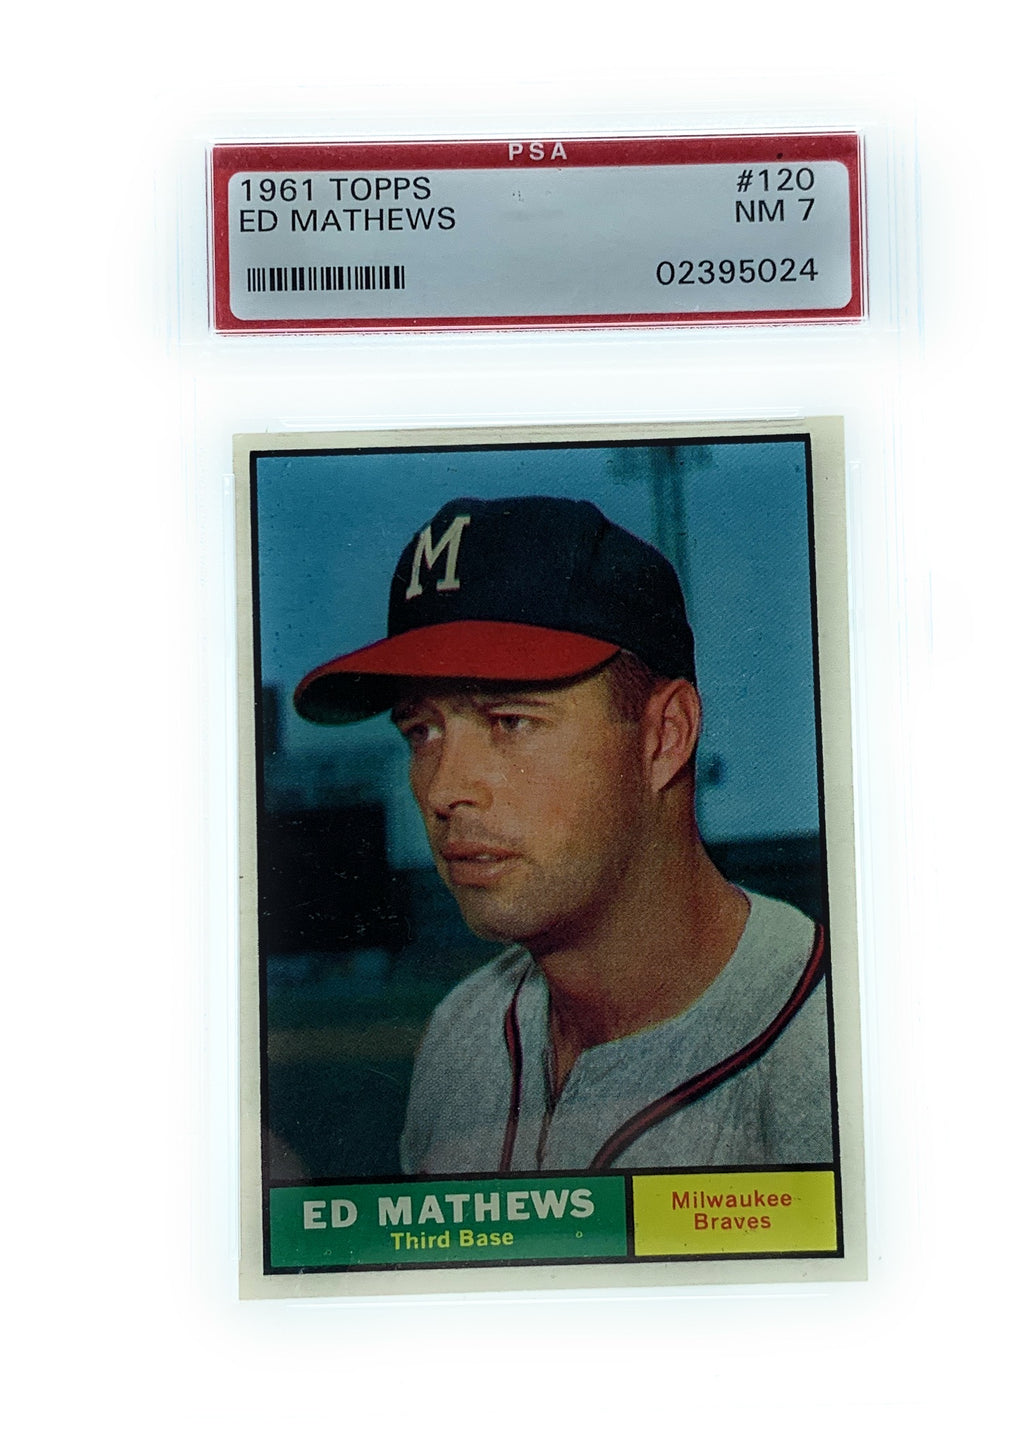 1961 Topps #120 Ed Mathews Baseball Card Graded NM 7 - Near Mint